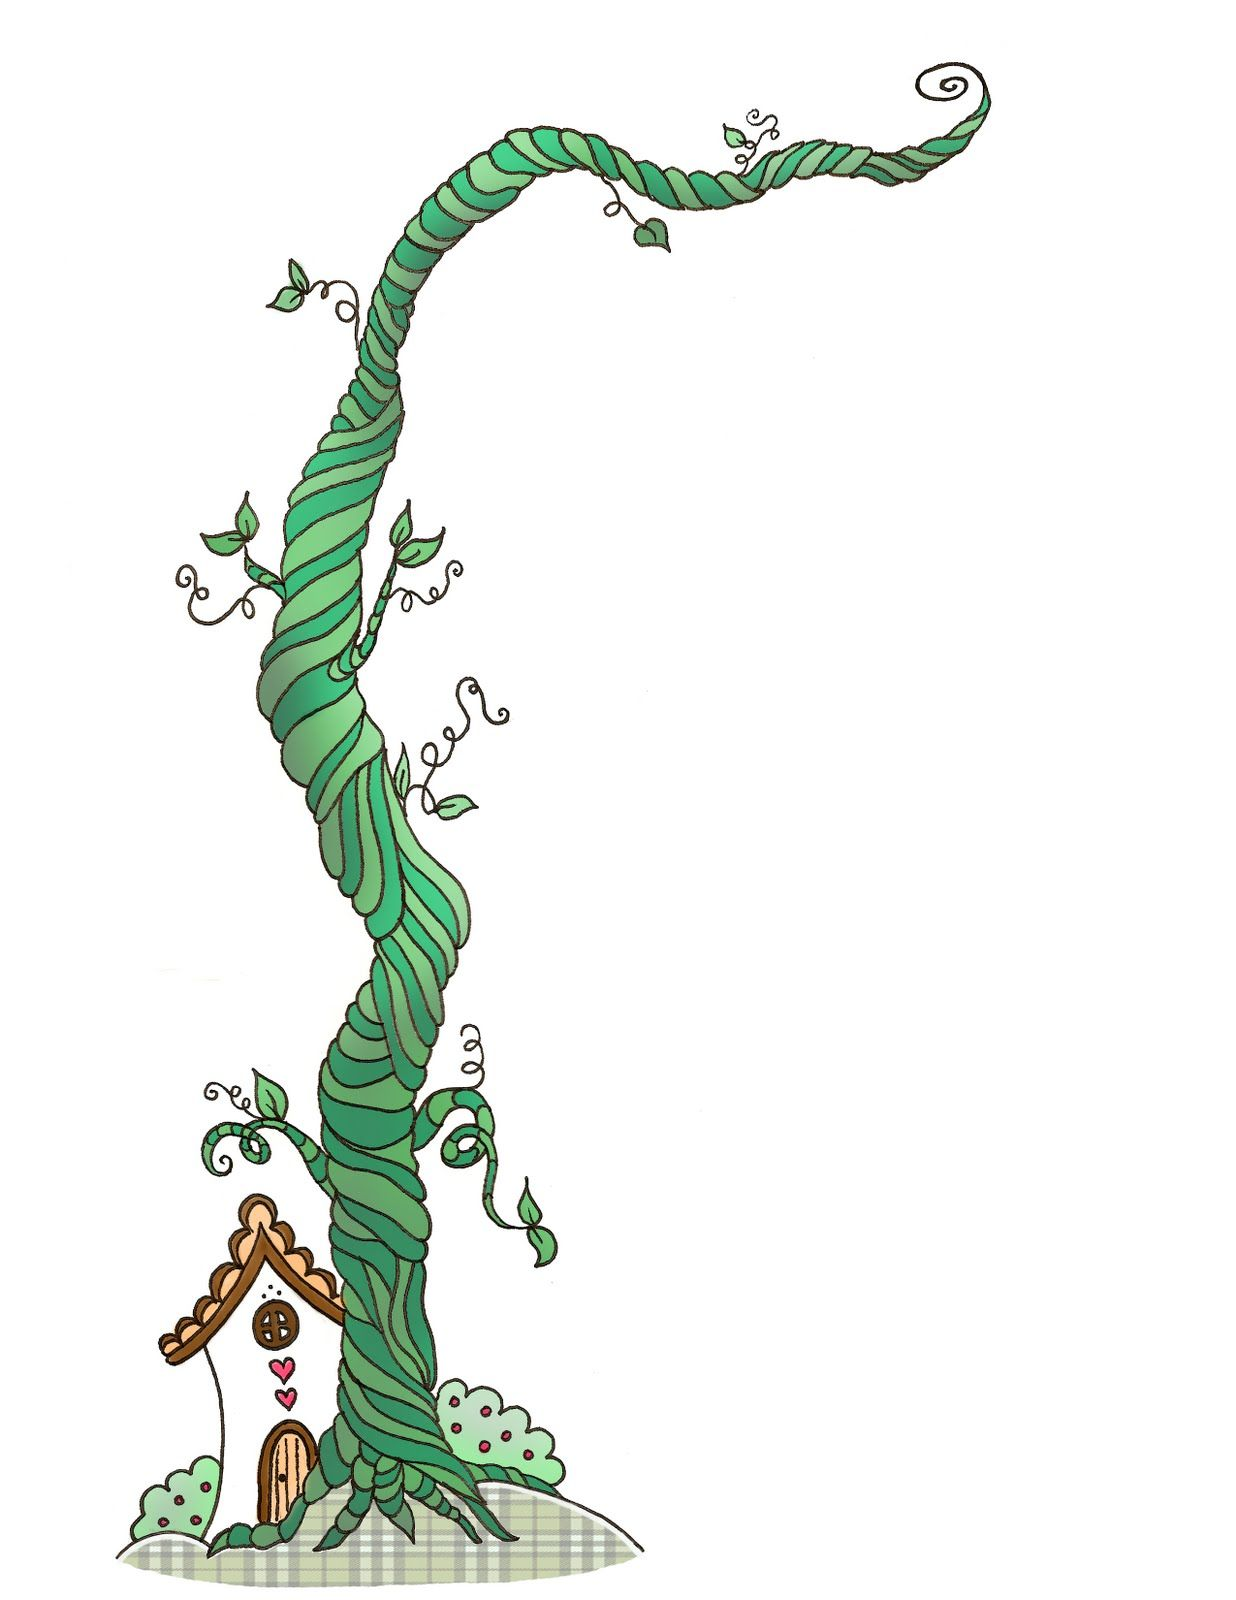 You Can Use Any Image Of Jack From Jack And The Beanstalk